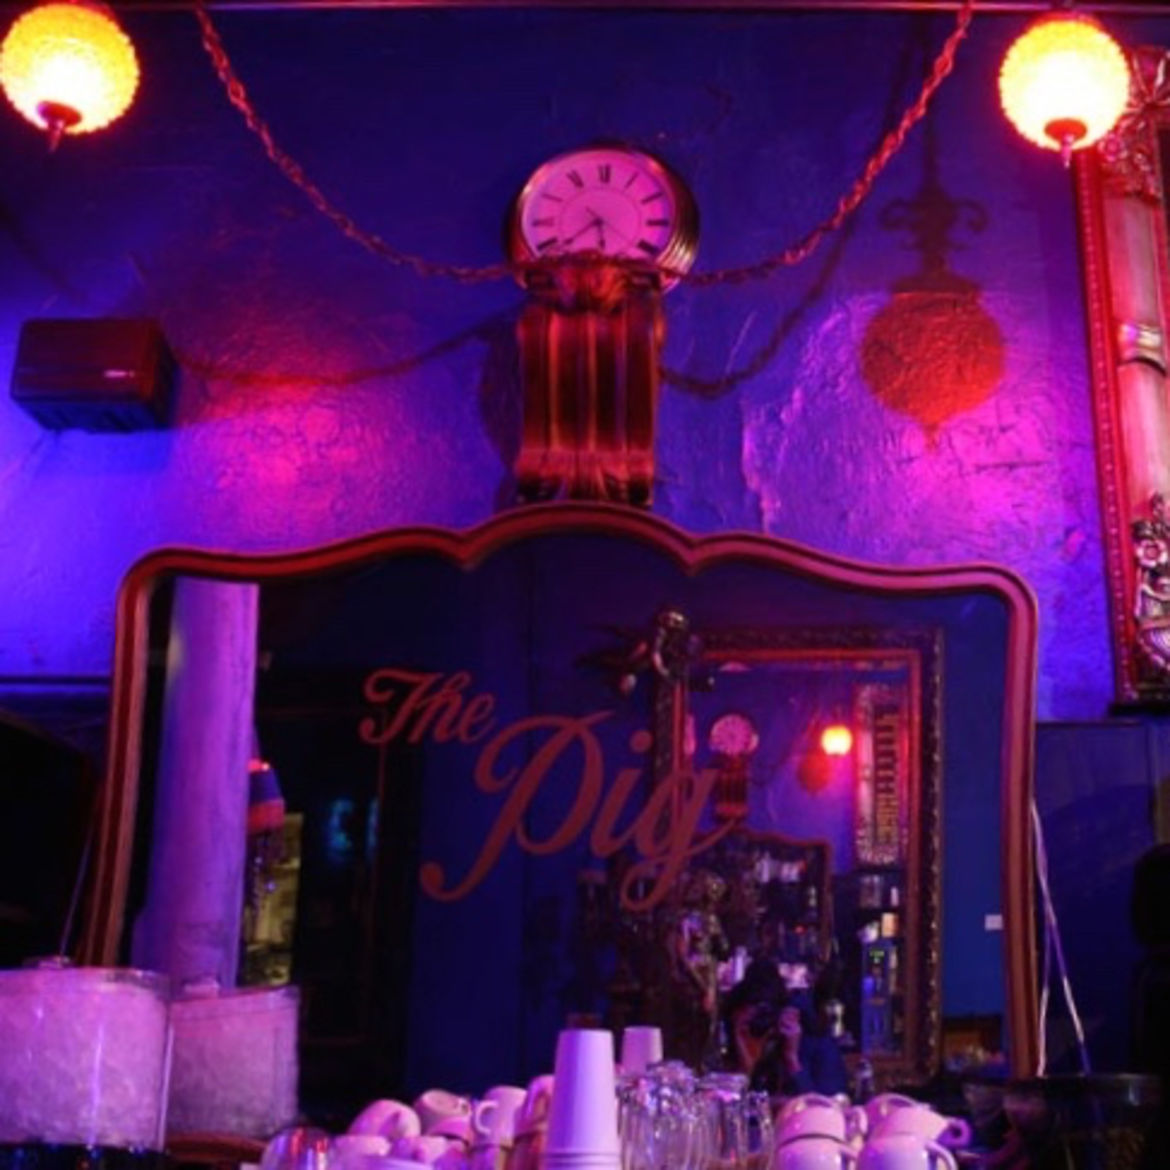 Cover Photo: The Bourgeois Pig, photo by Kenn Wilson/flickr